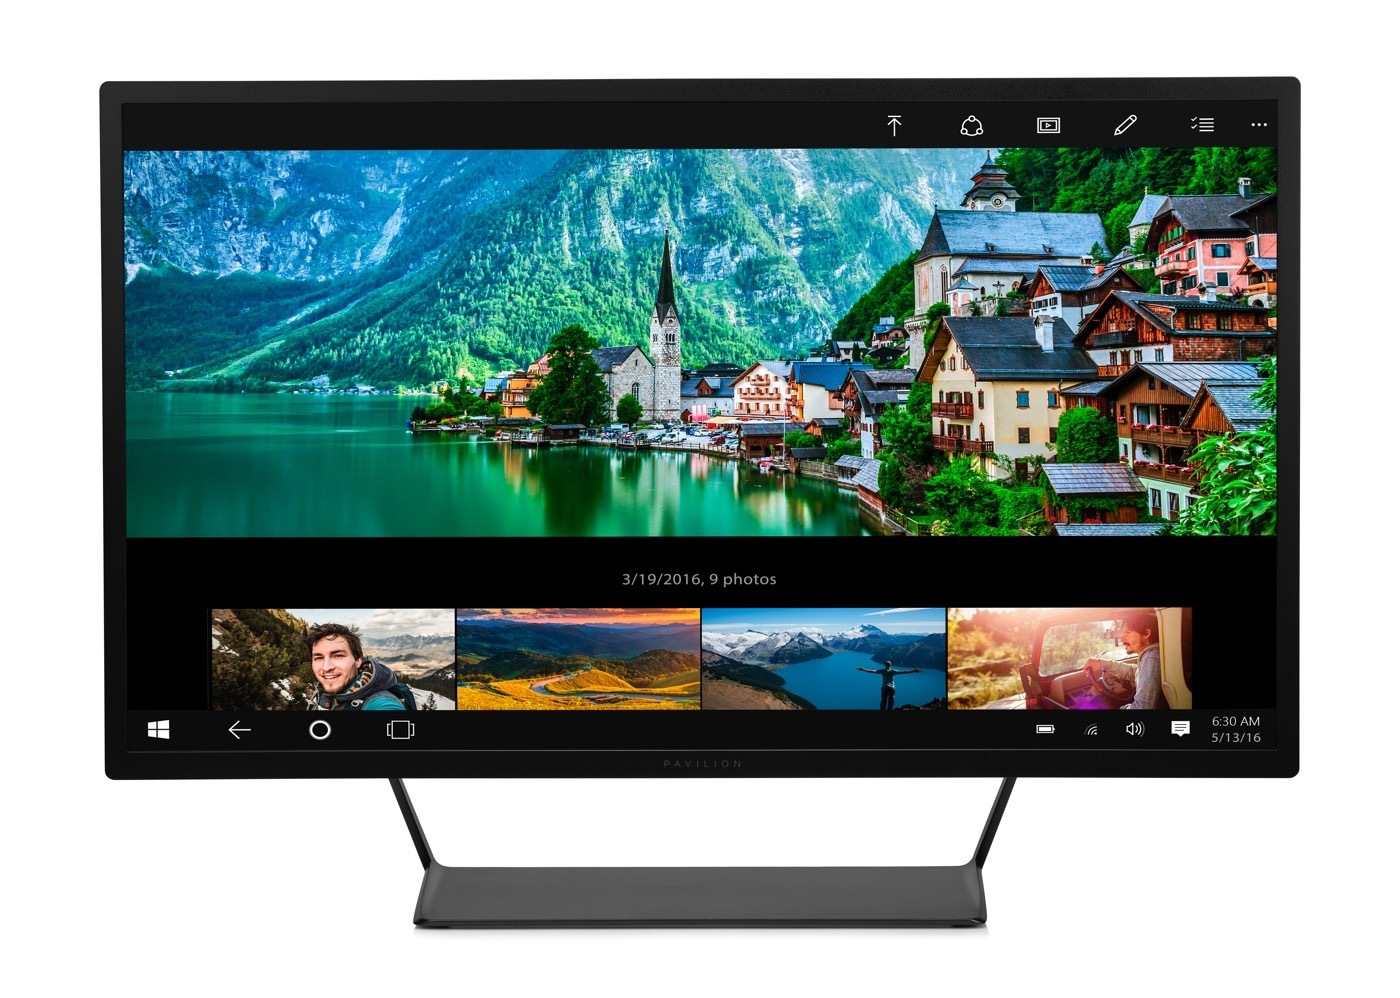 HP Pavilion Pavilion 32 Quad HD12 display 2016 600 01